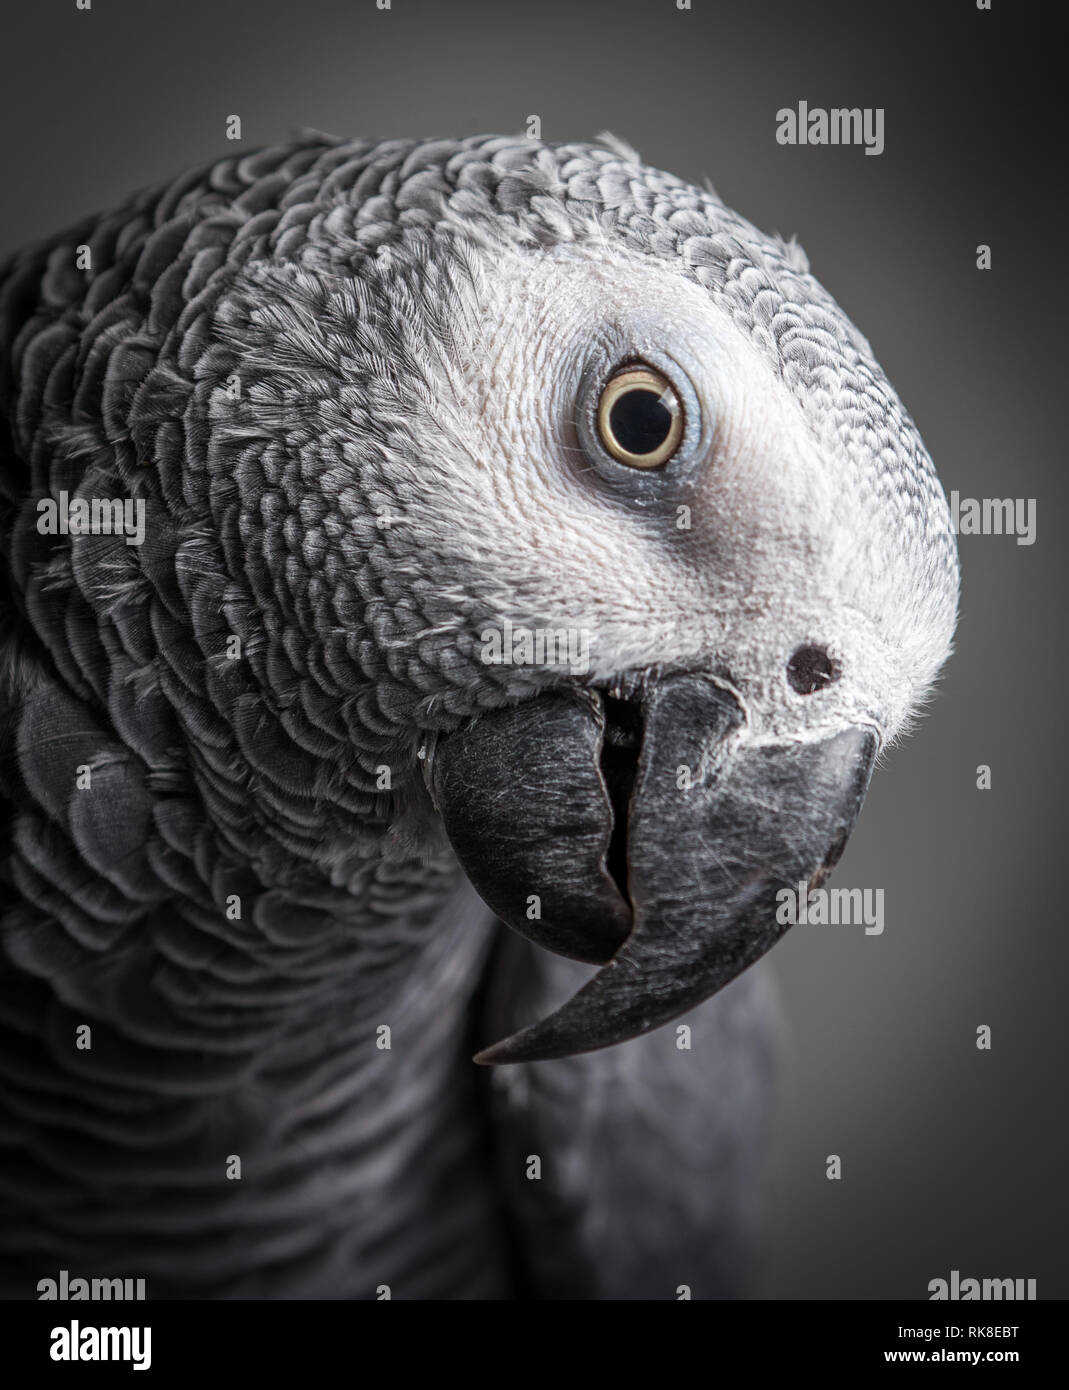 African Grey parrot with his head tilted looking down. Close up shot of a captive pet bird. - Stock Image